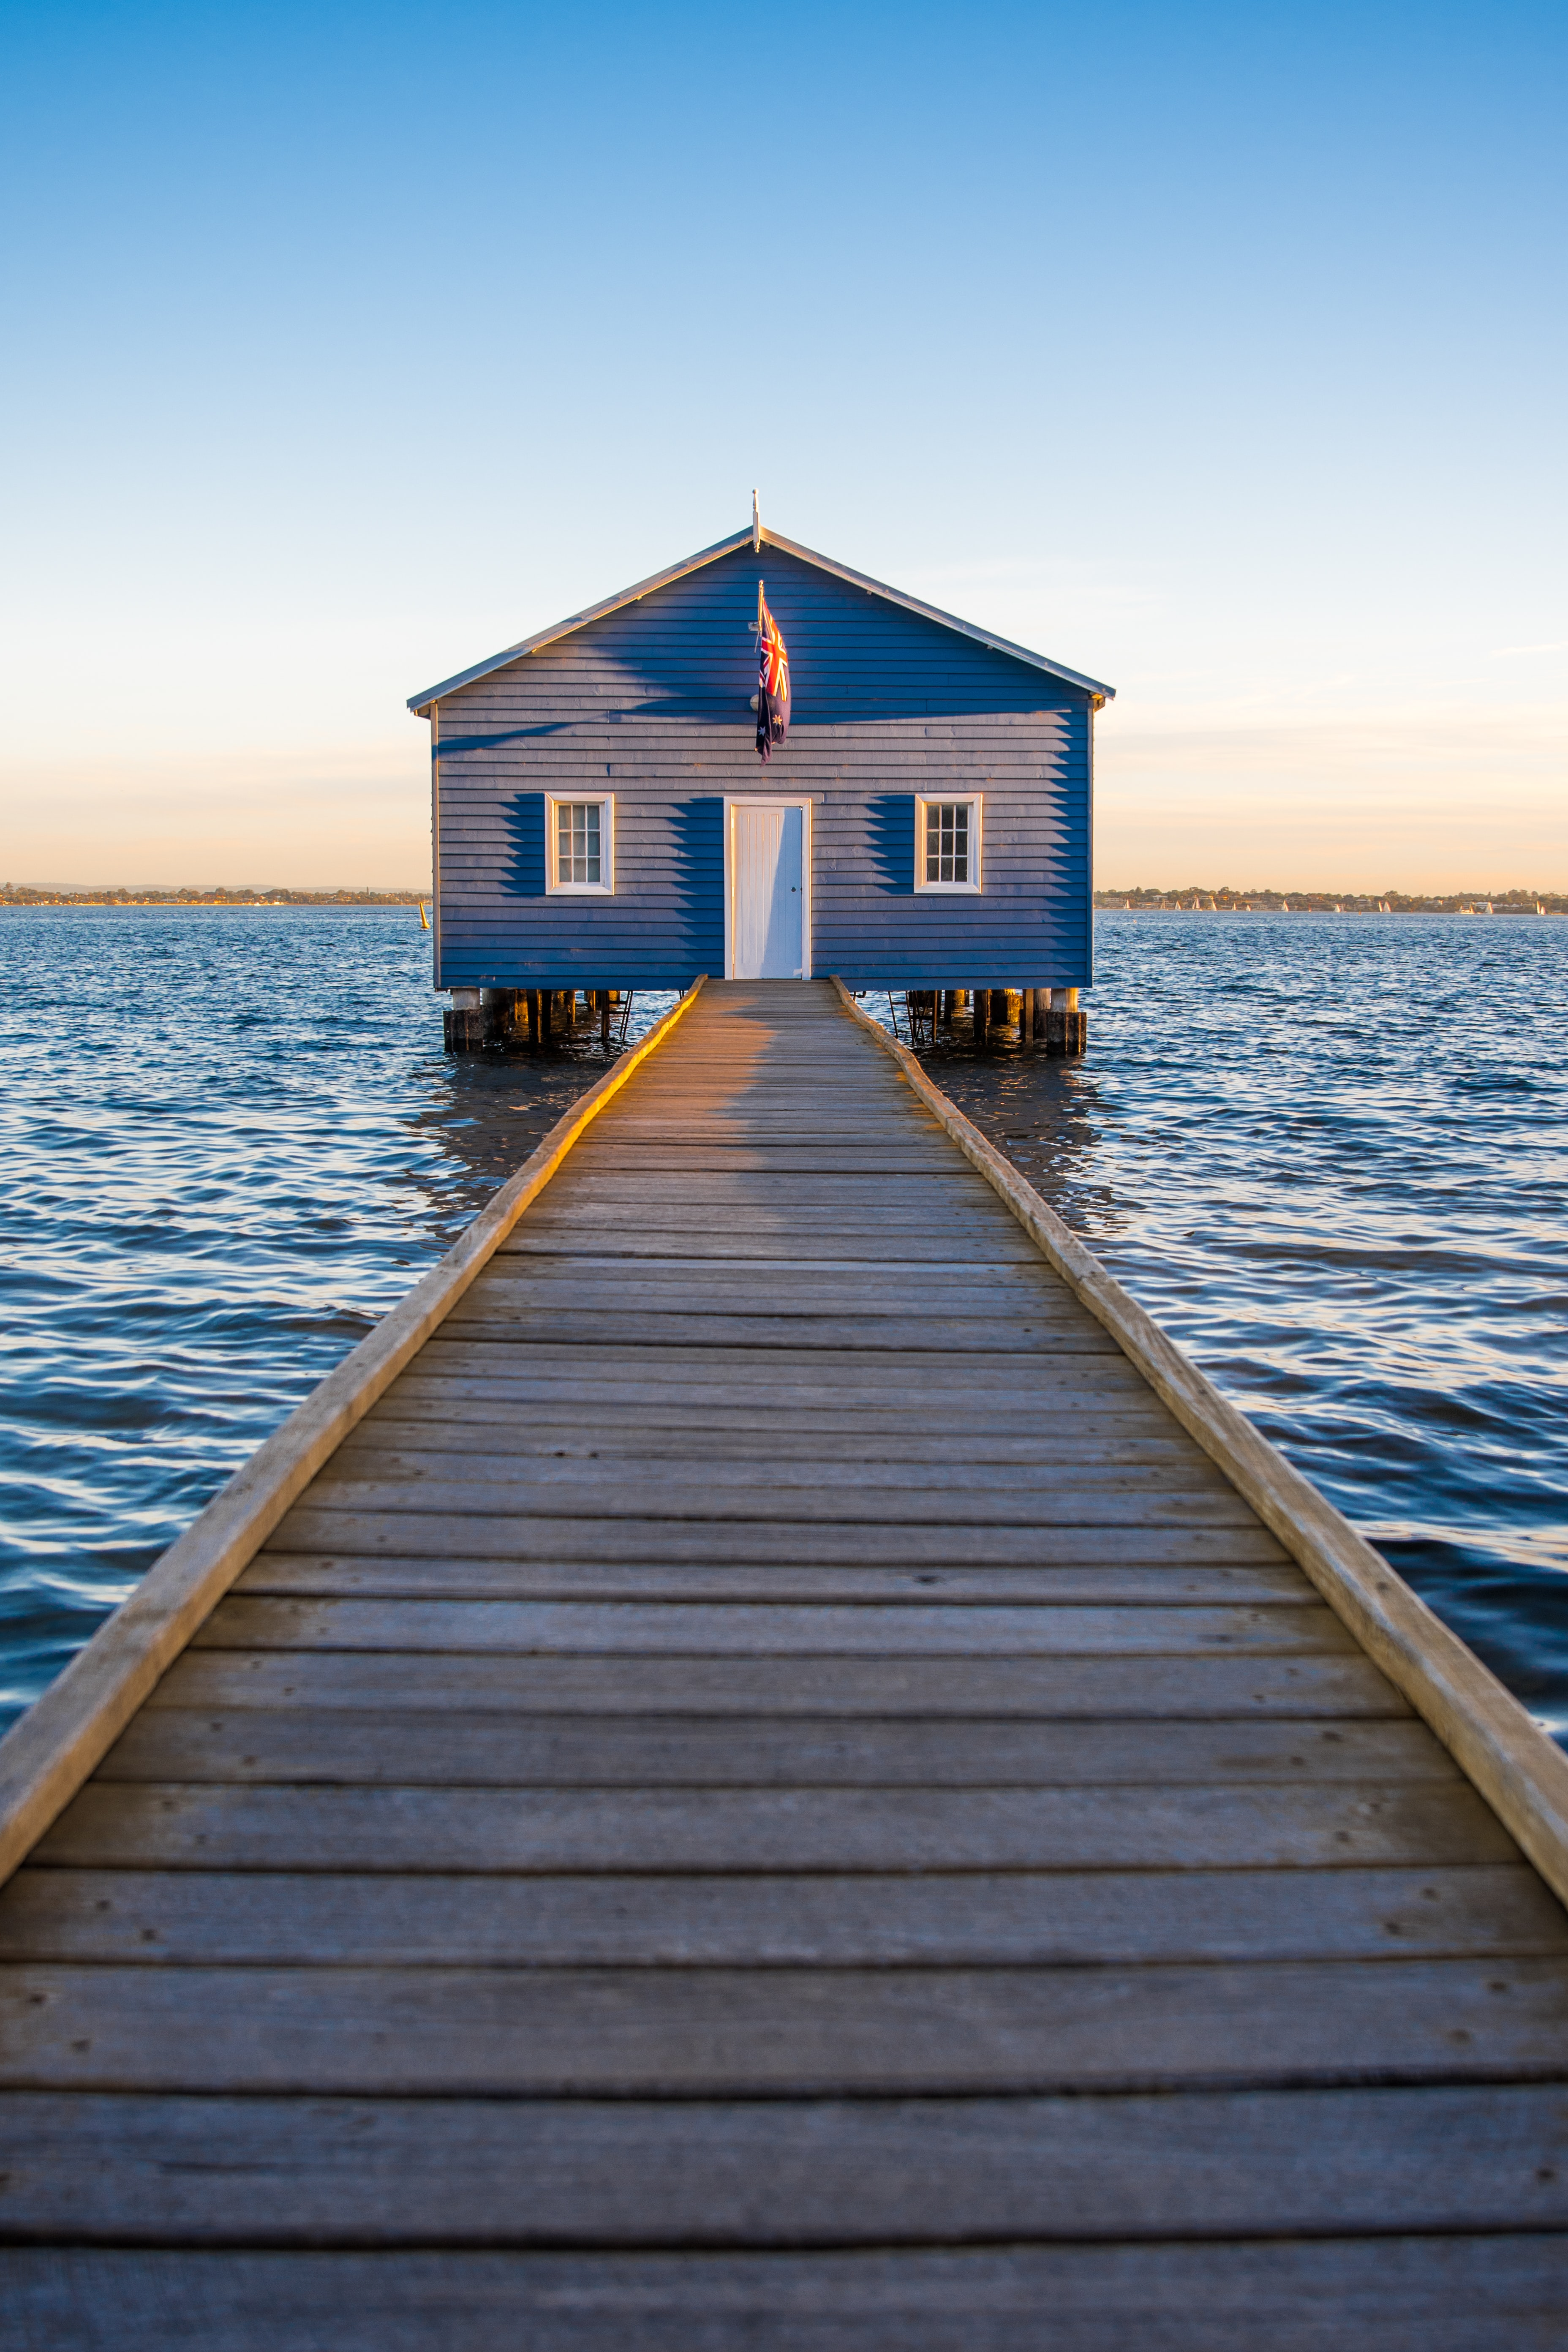 blue and white wooden house on sea under clear blue sky during daytime